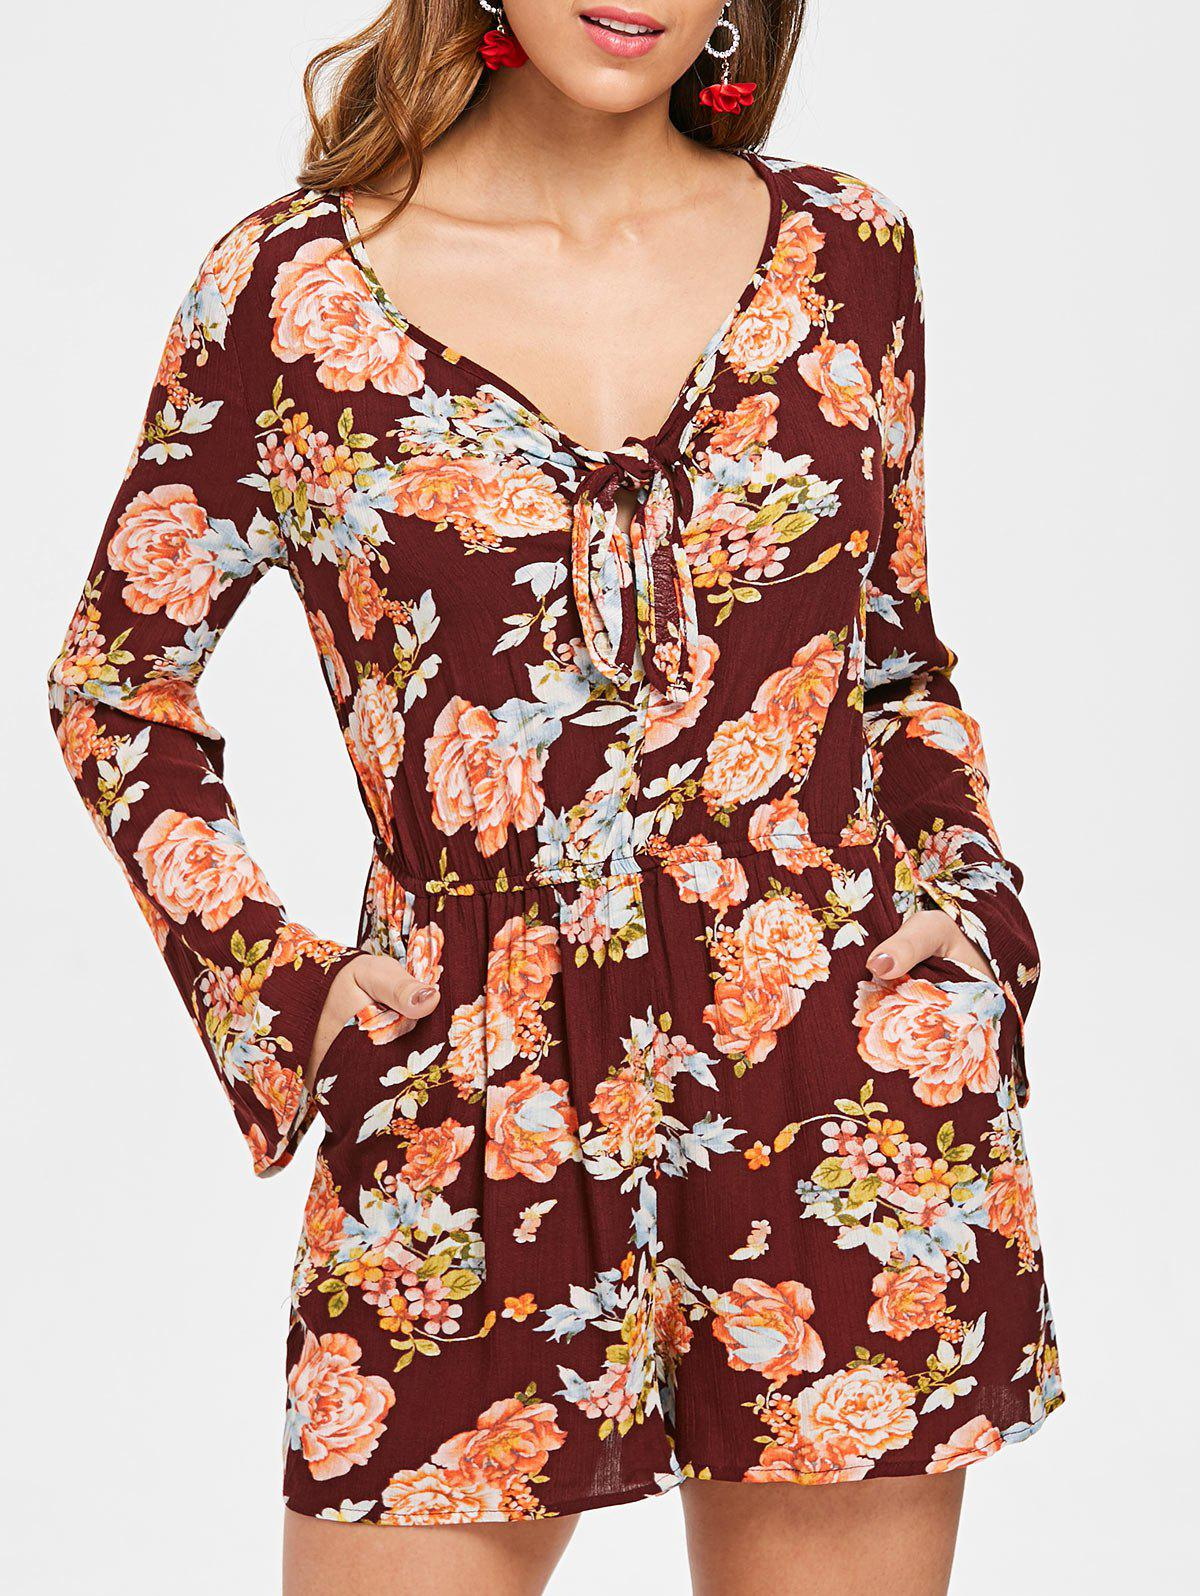 Buy Floral Print Long Sleeve Romper